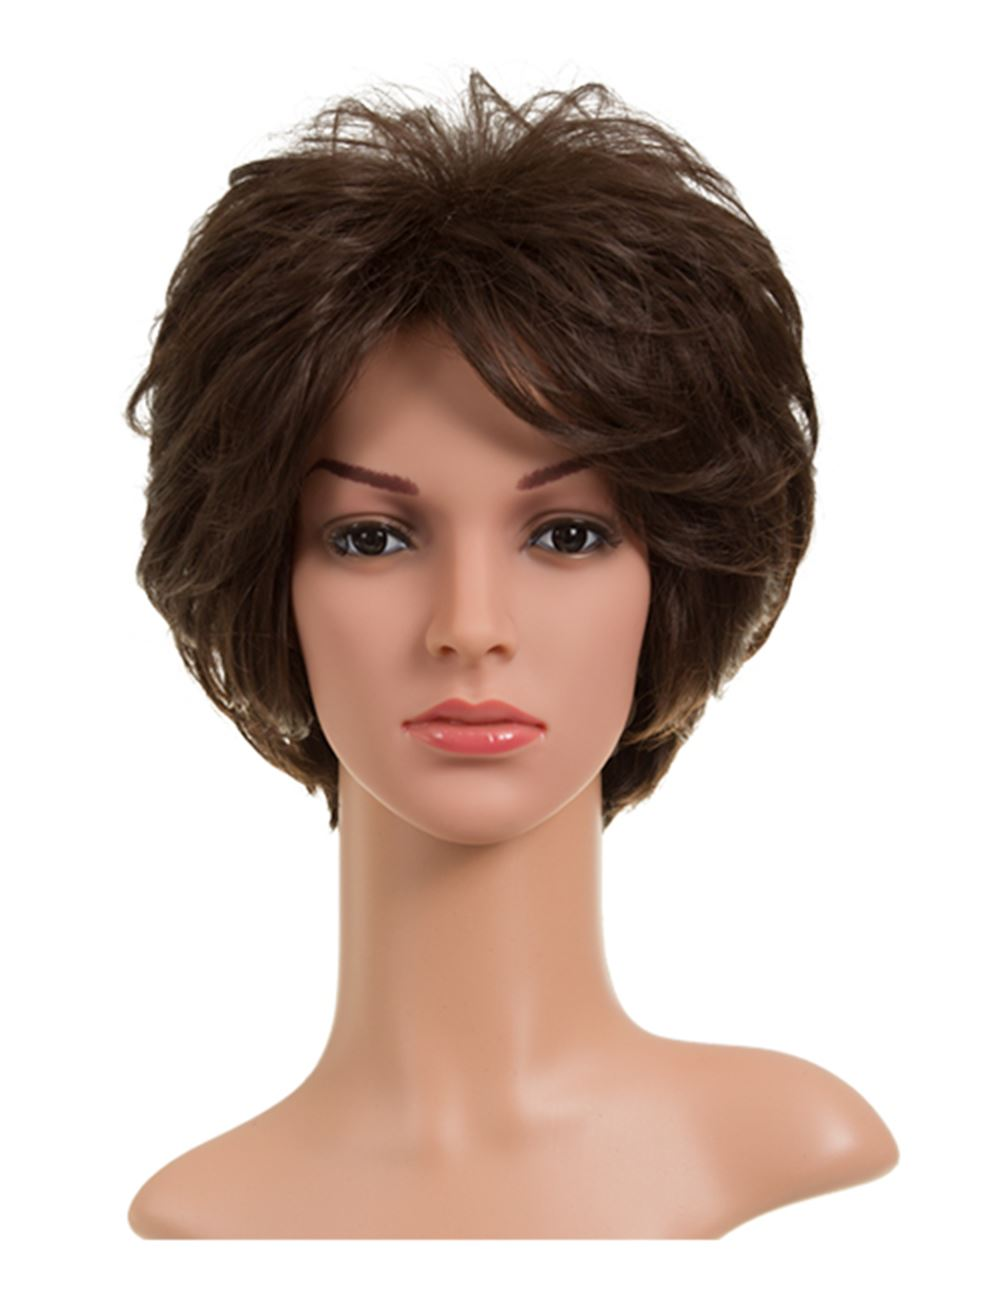 Hoingblond Indian Remy Haar Extensions Mit Clips P 530 besides Heahair New Style Peach Pink Synthetic Braided Straight Lace Front Wig Hs0033 furthermore Tool concert additionally Penelope Cruz Takes Break Playing Donatella Versace likewise 10009. on blonde gold wig